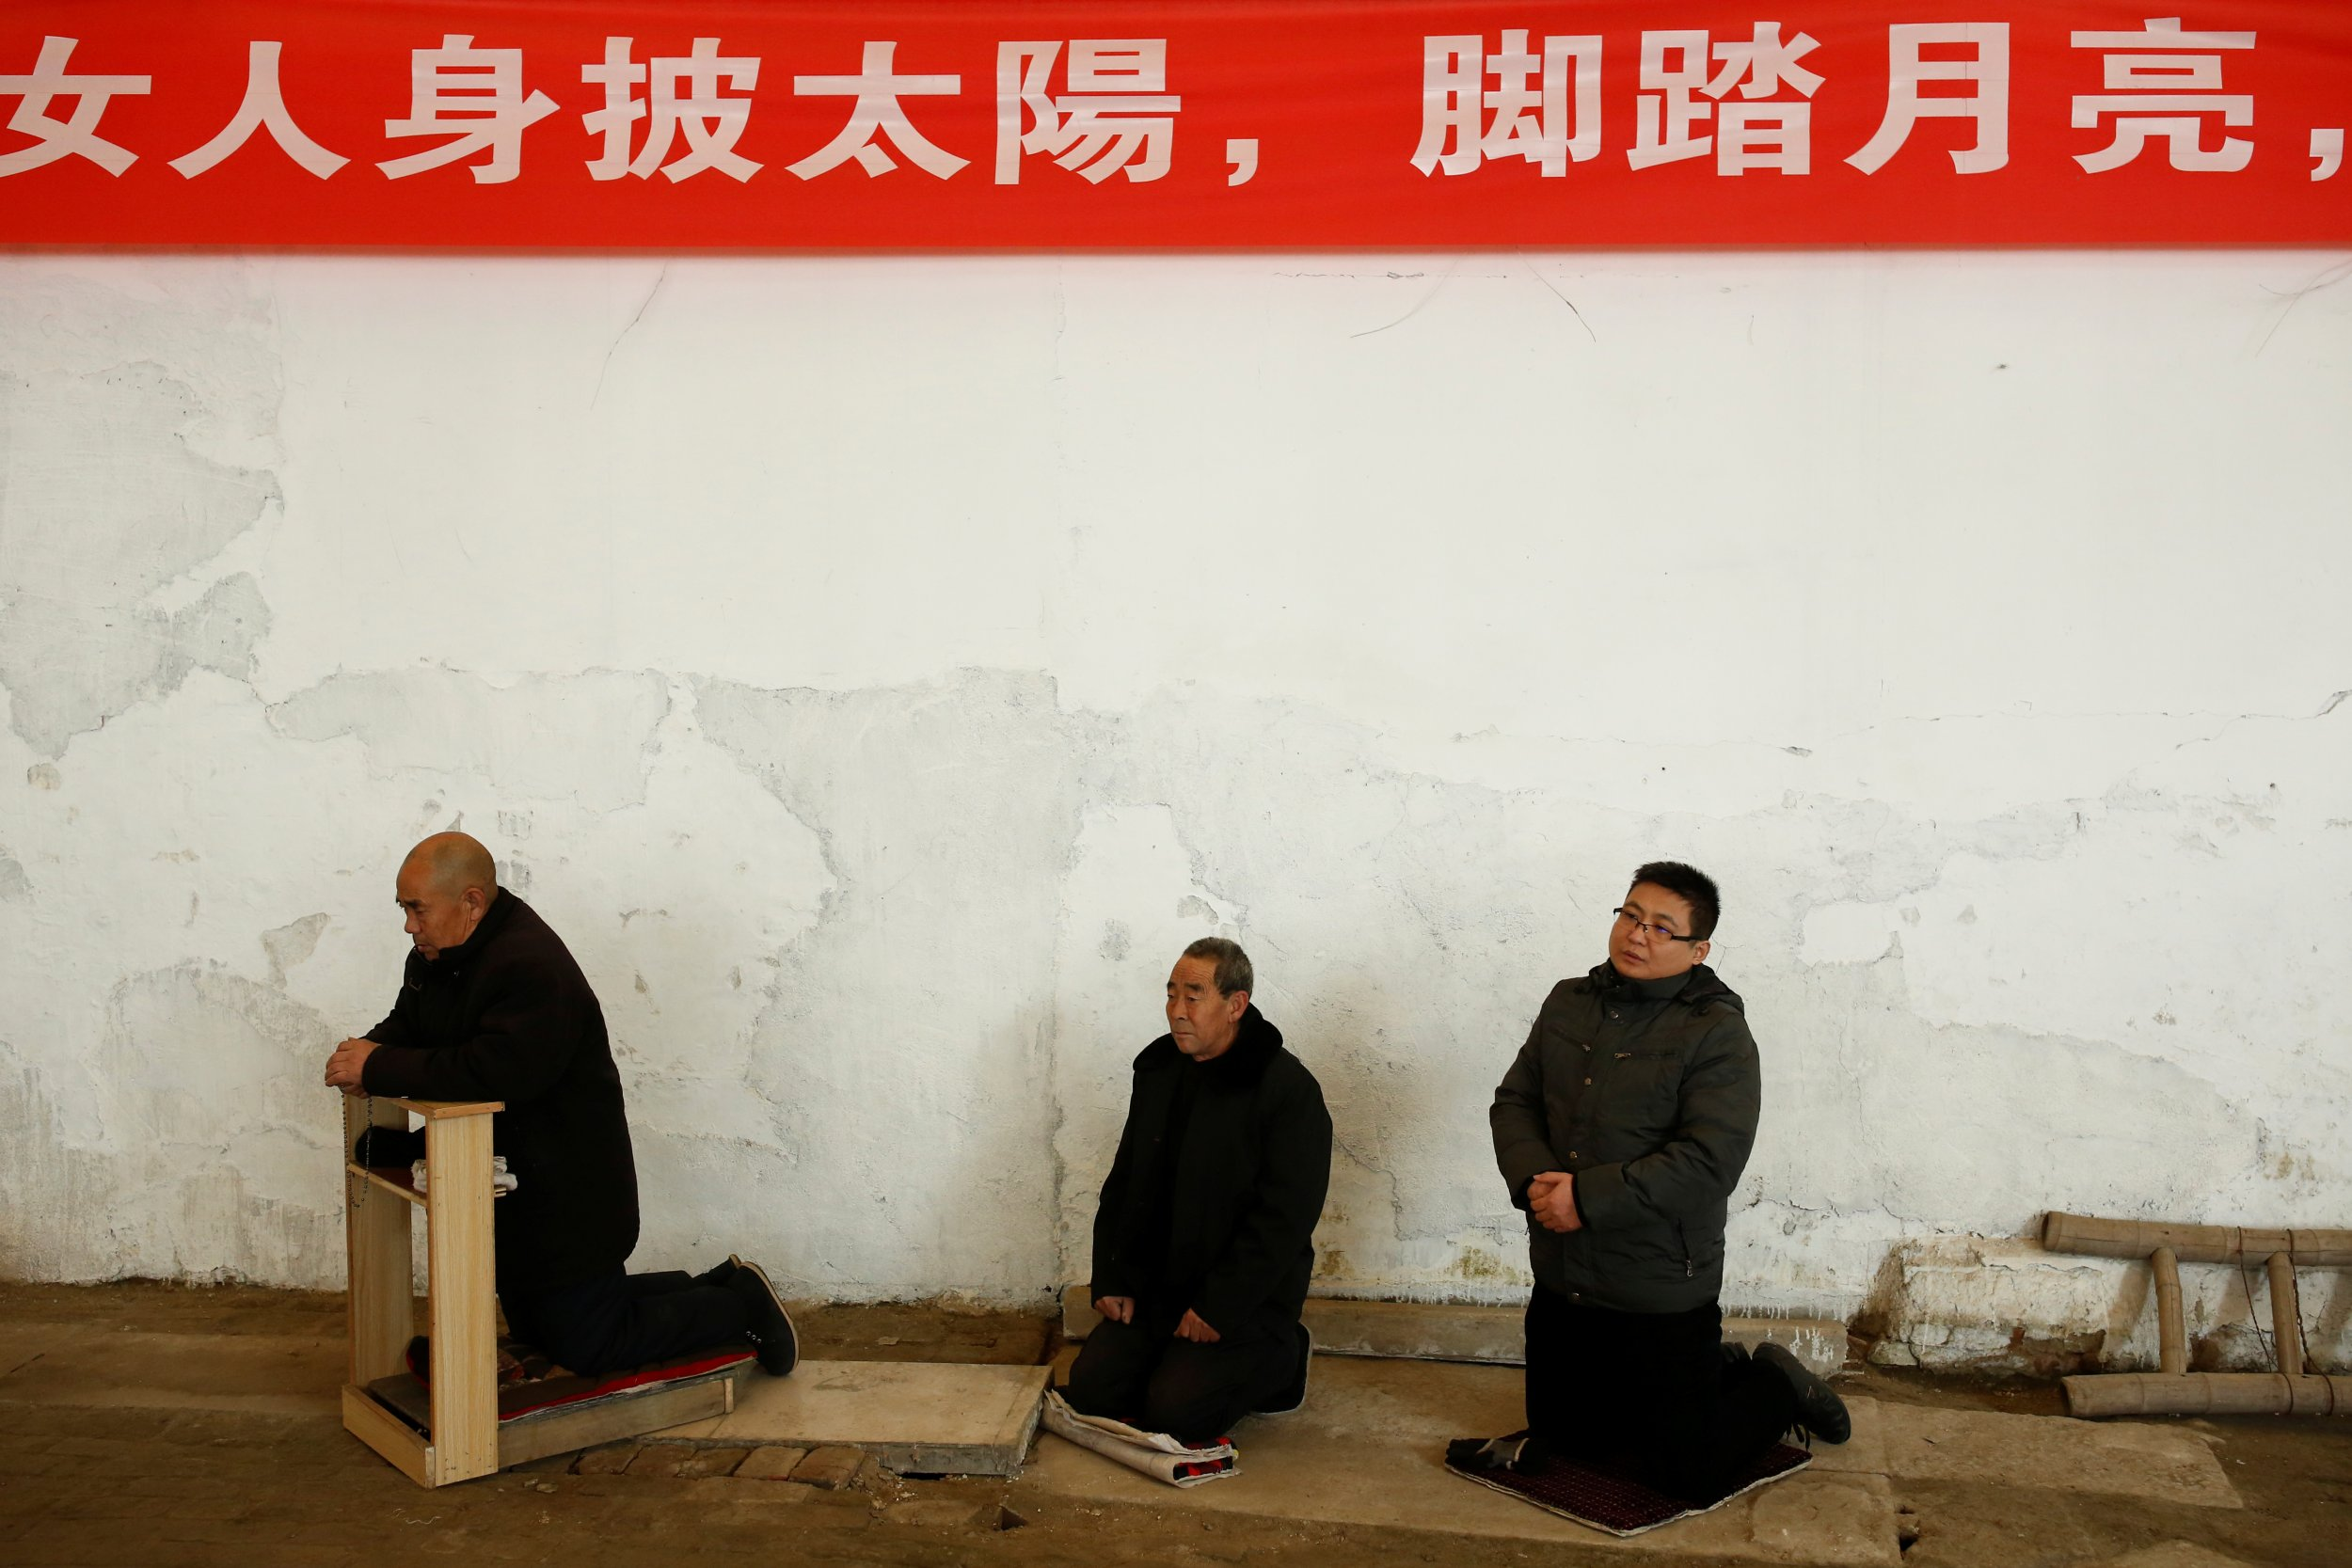 Impoverished Chinese Christians must take down pictures of Jesus and replace them with photos of Xi